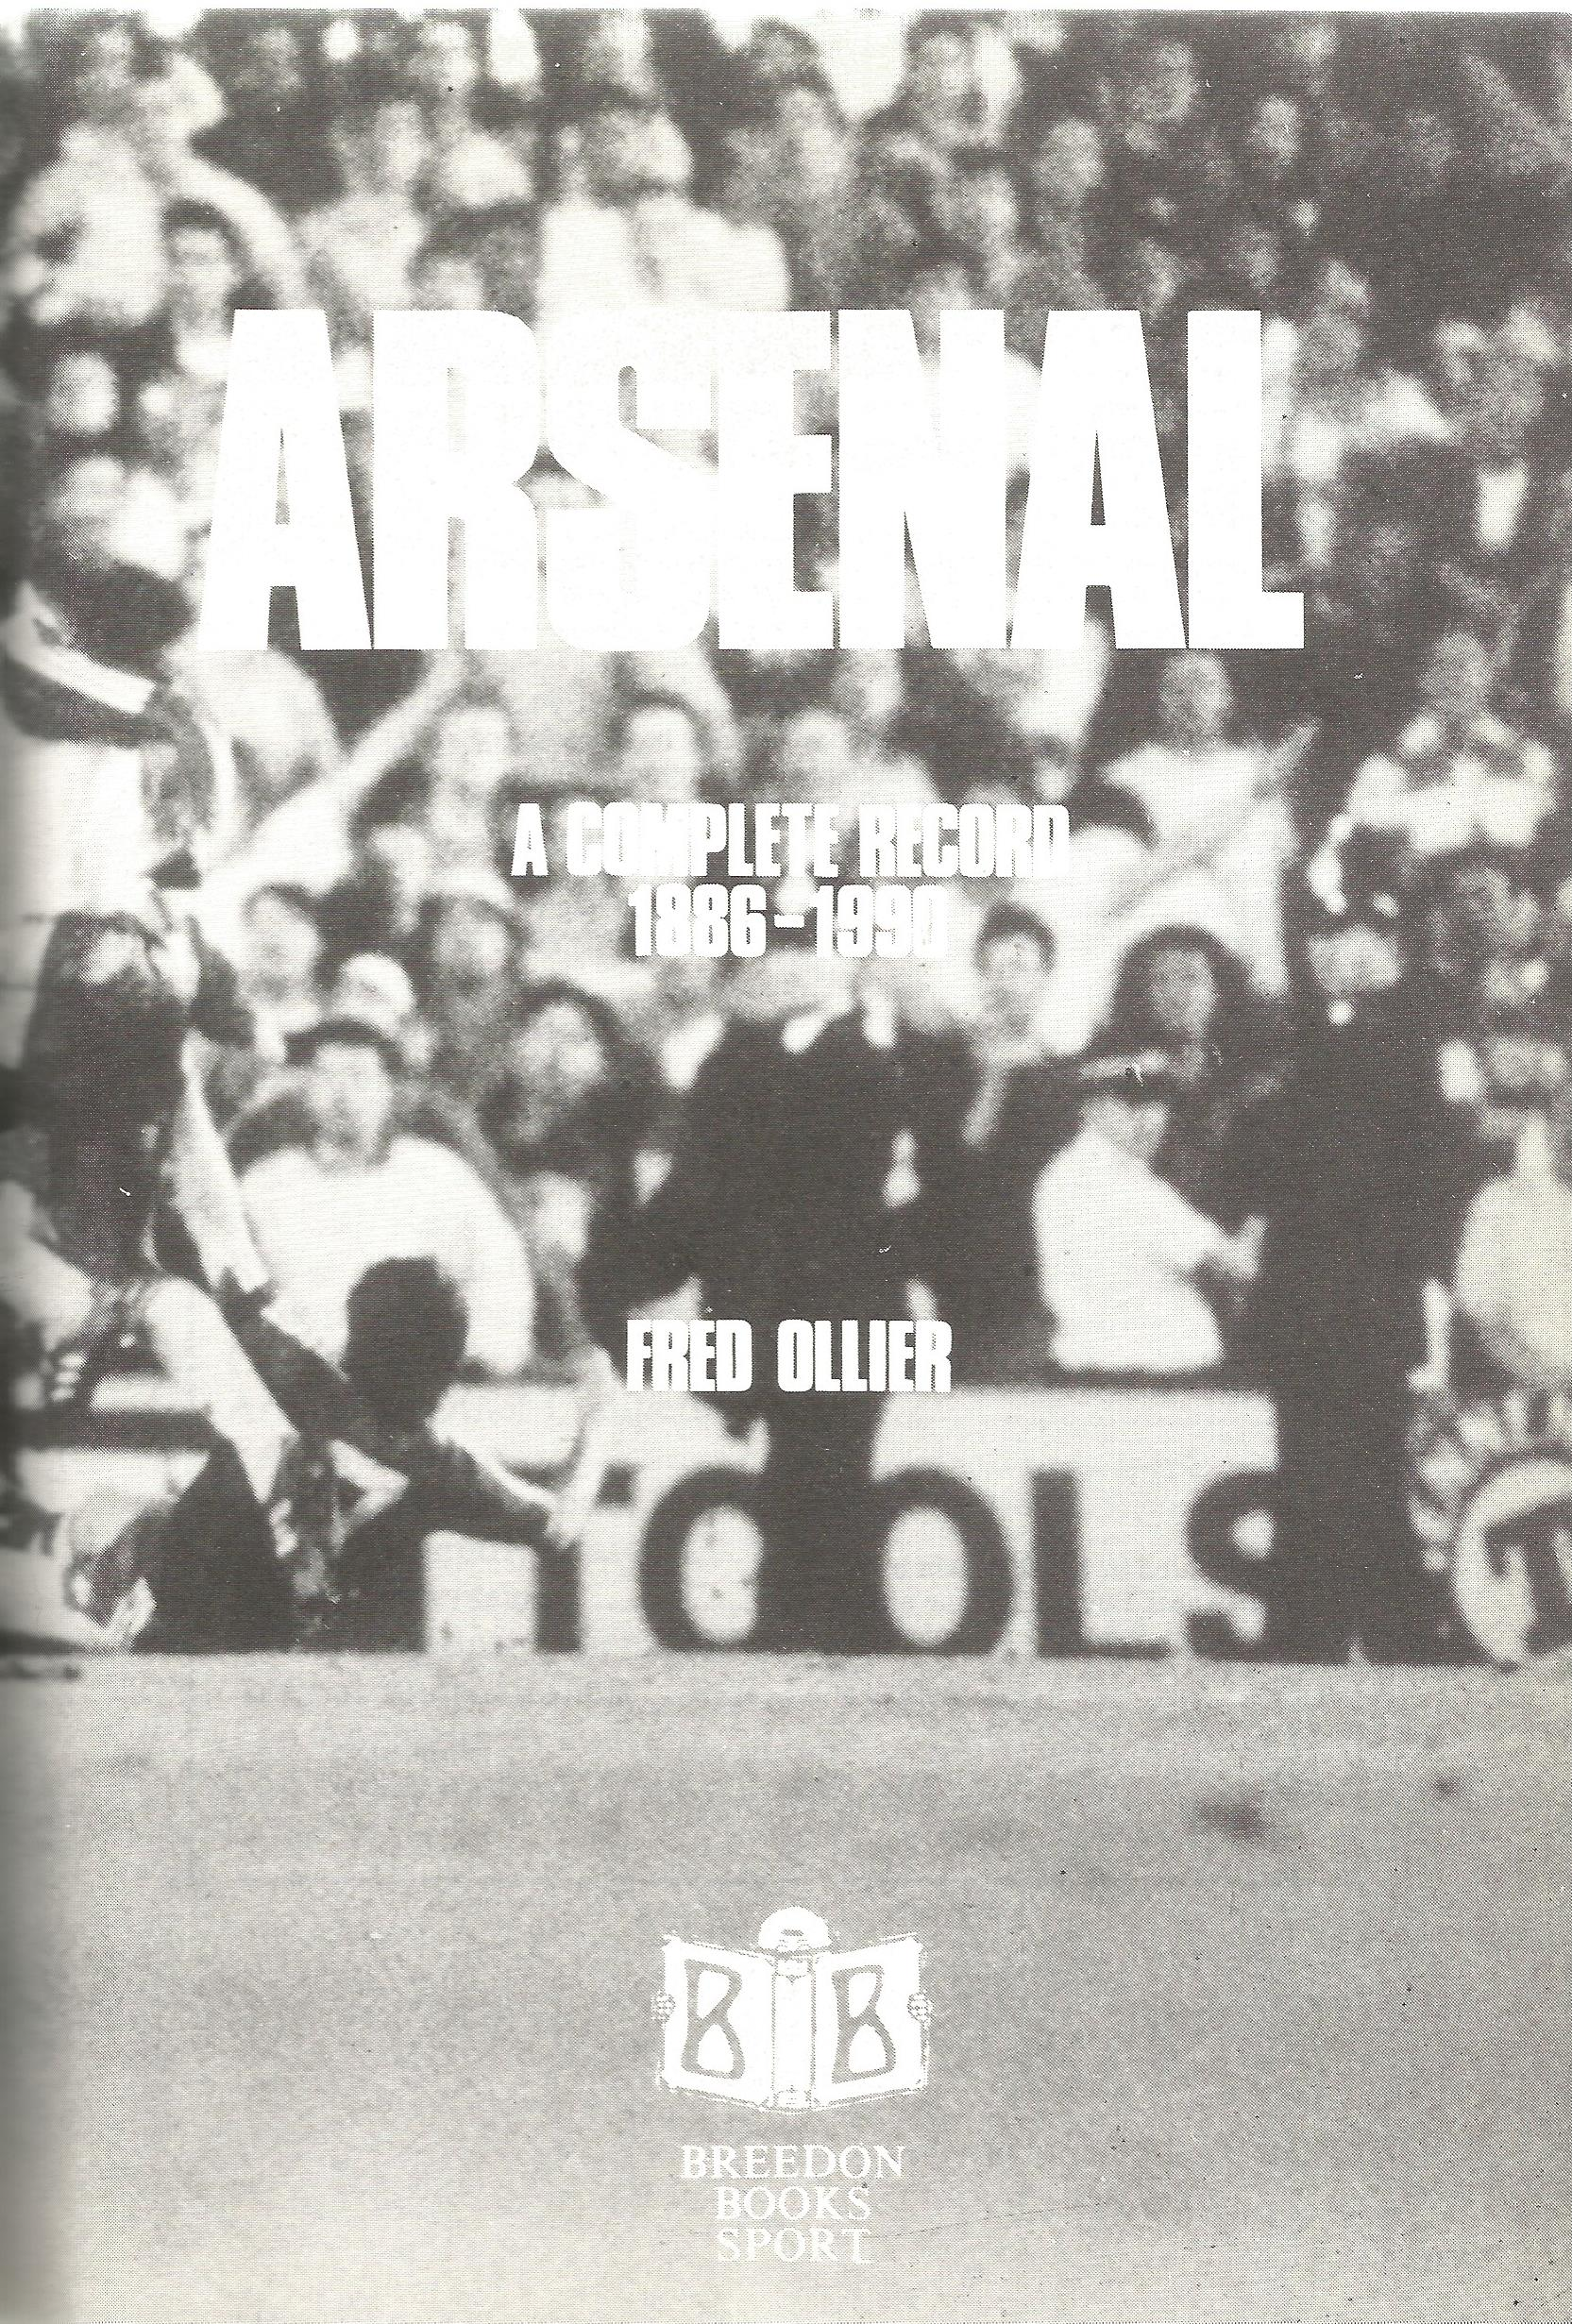 Arsenal A Complete Record 1886 1990 by Fred Ollier. First Edition Hardback book. Dust jacket and - Image 2 of 3